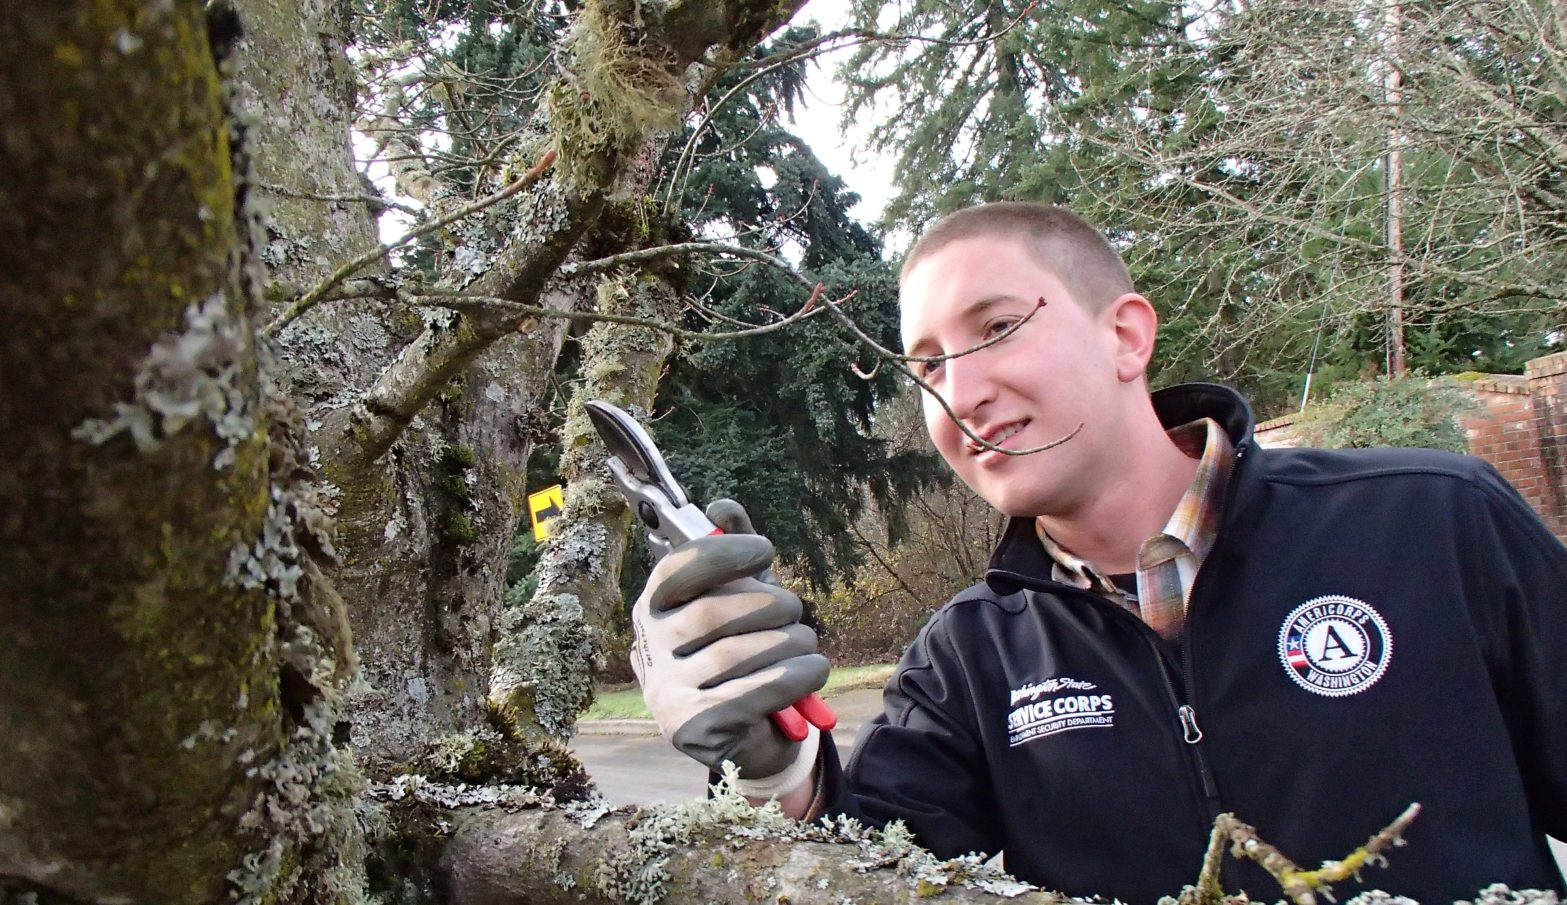 Reggie serving with the City of Vancouver Urban Forestry